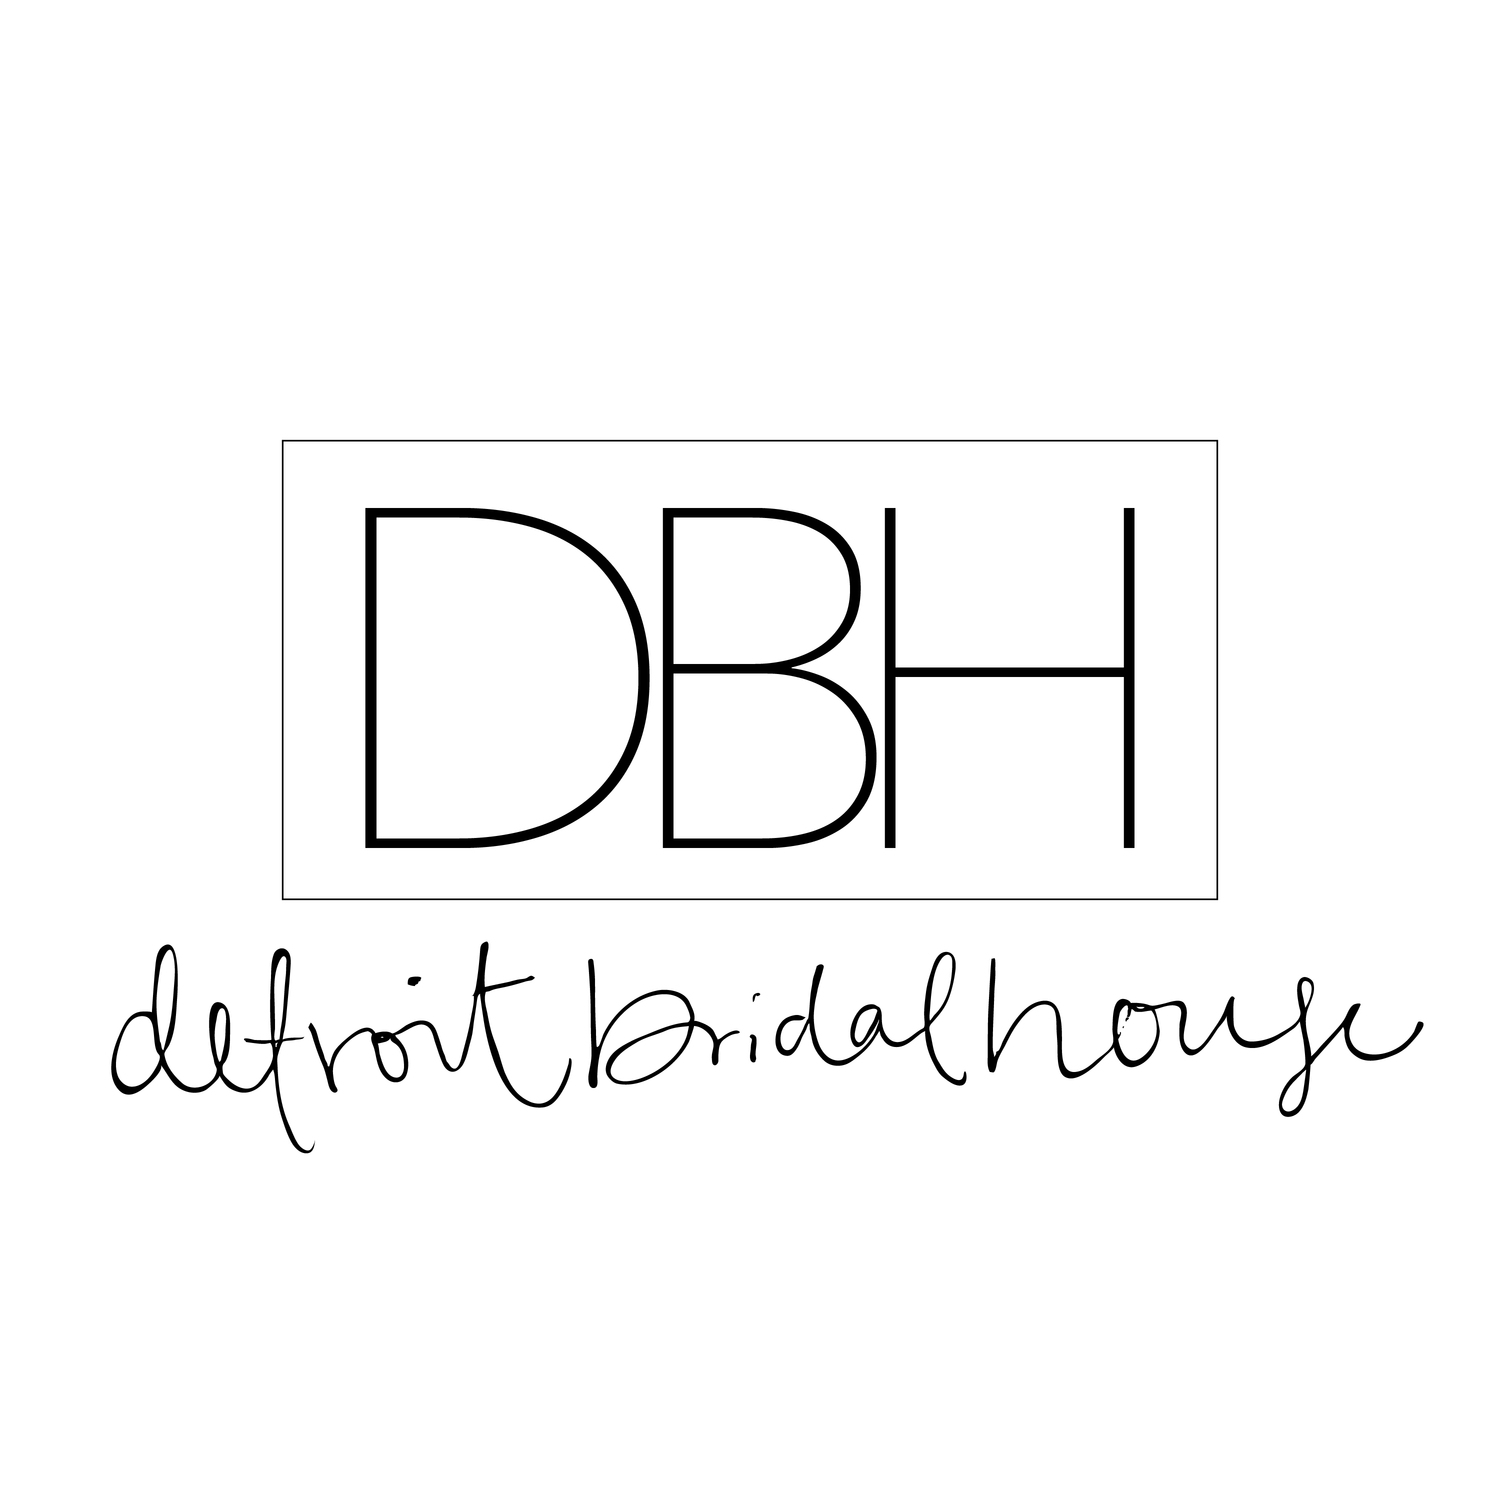 Detroit Bridal House